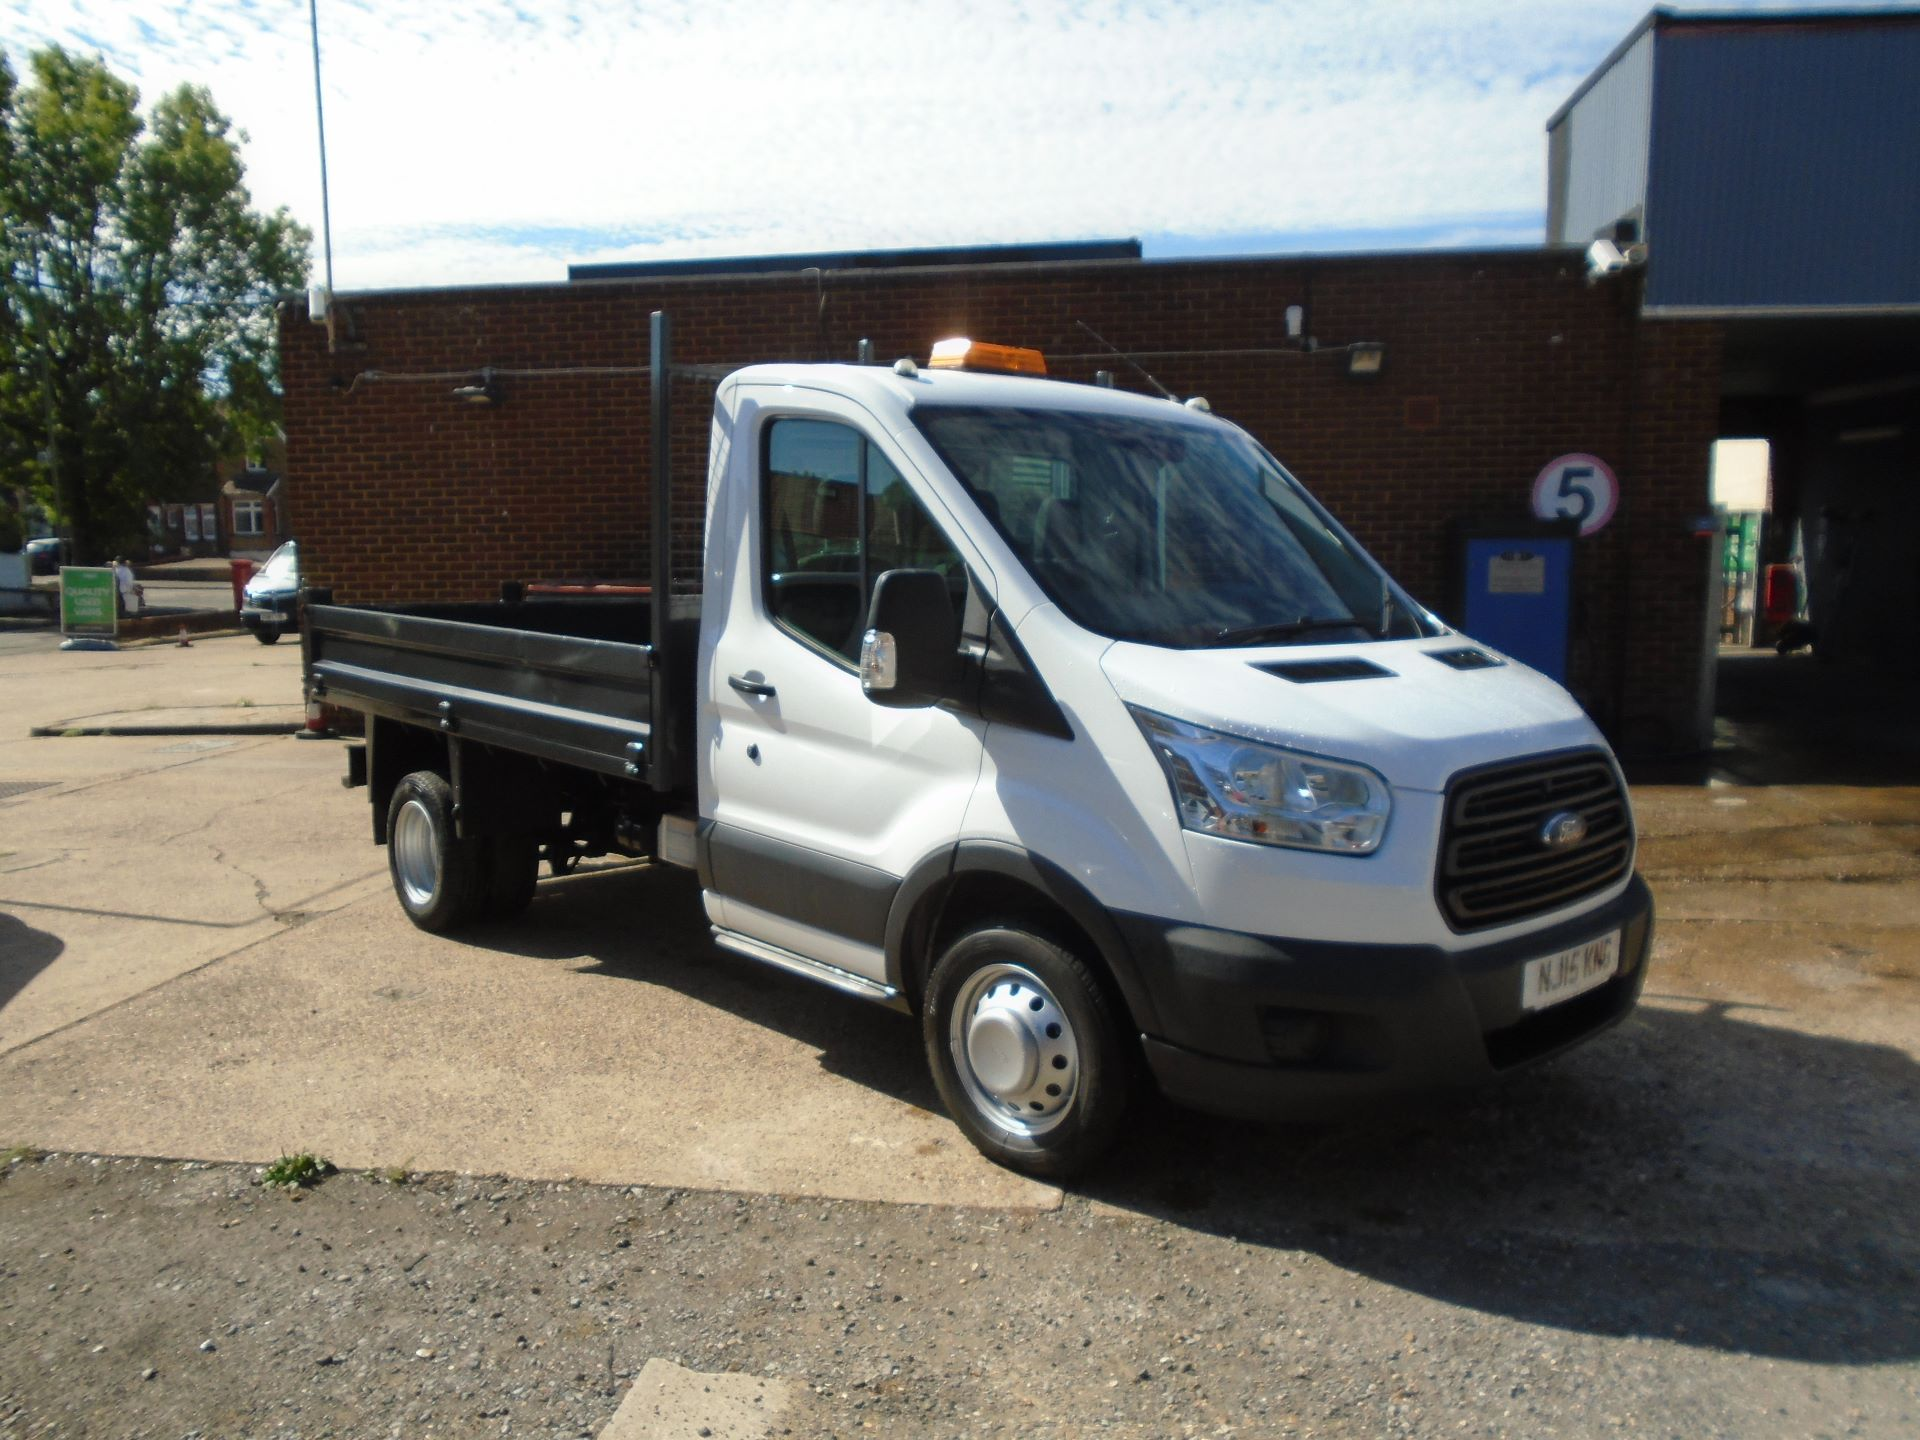 2015 Ford Transit 2.2 Tdci 125Ps Chassis Cab Euro5 (NJ15KNG)